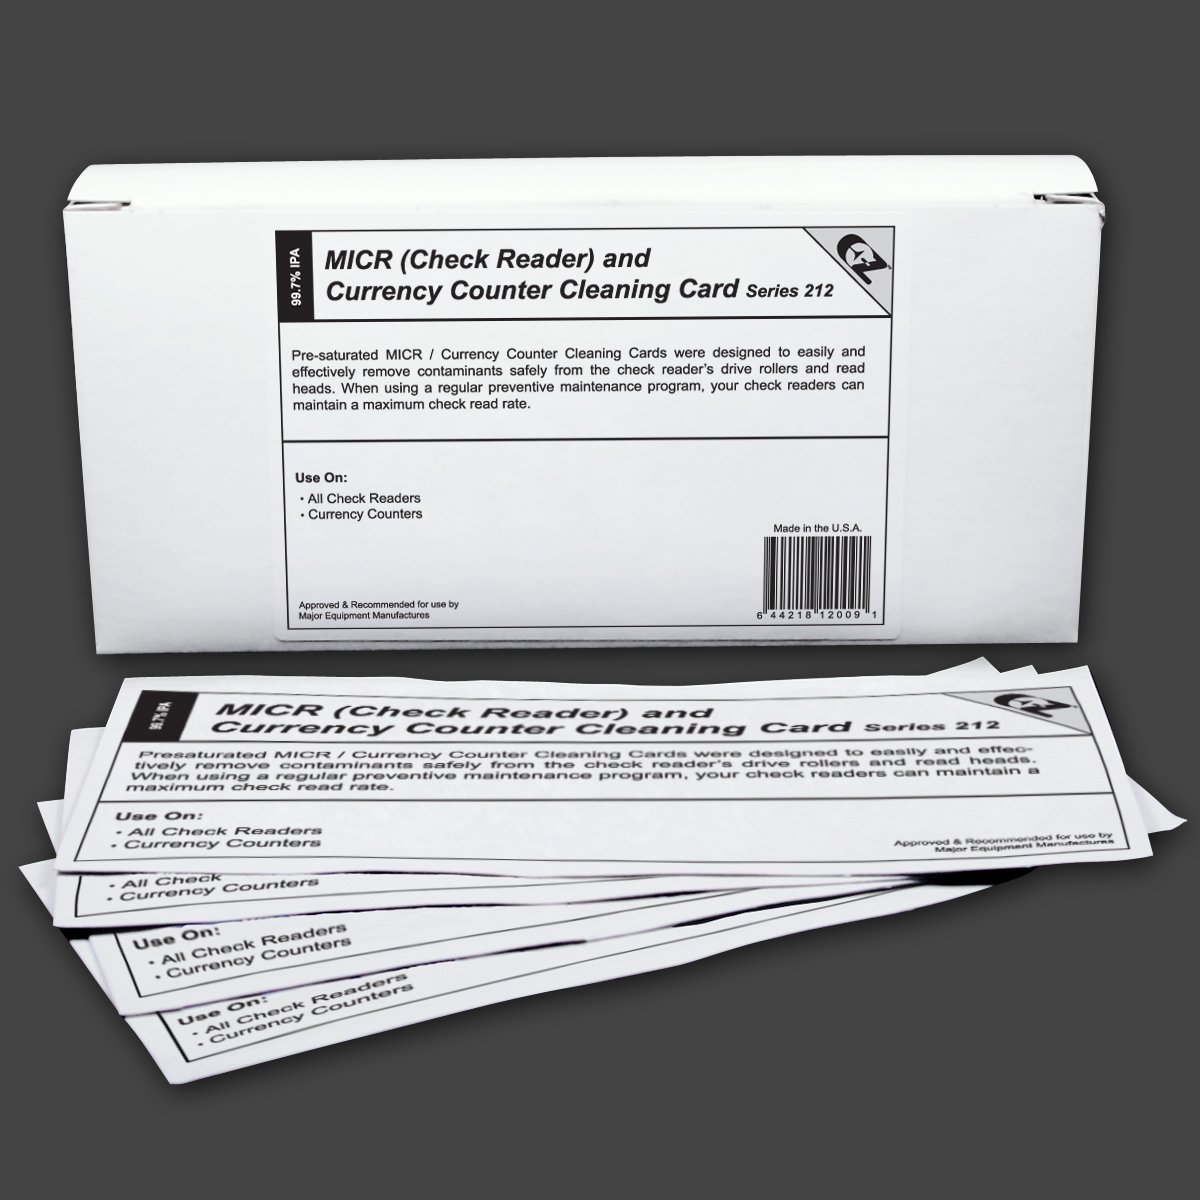 Waffletechnology 4K2-MICRB25 MICR/Check Reader/Currency Counter Cleaning Cards (100 Cards)